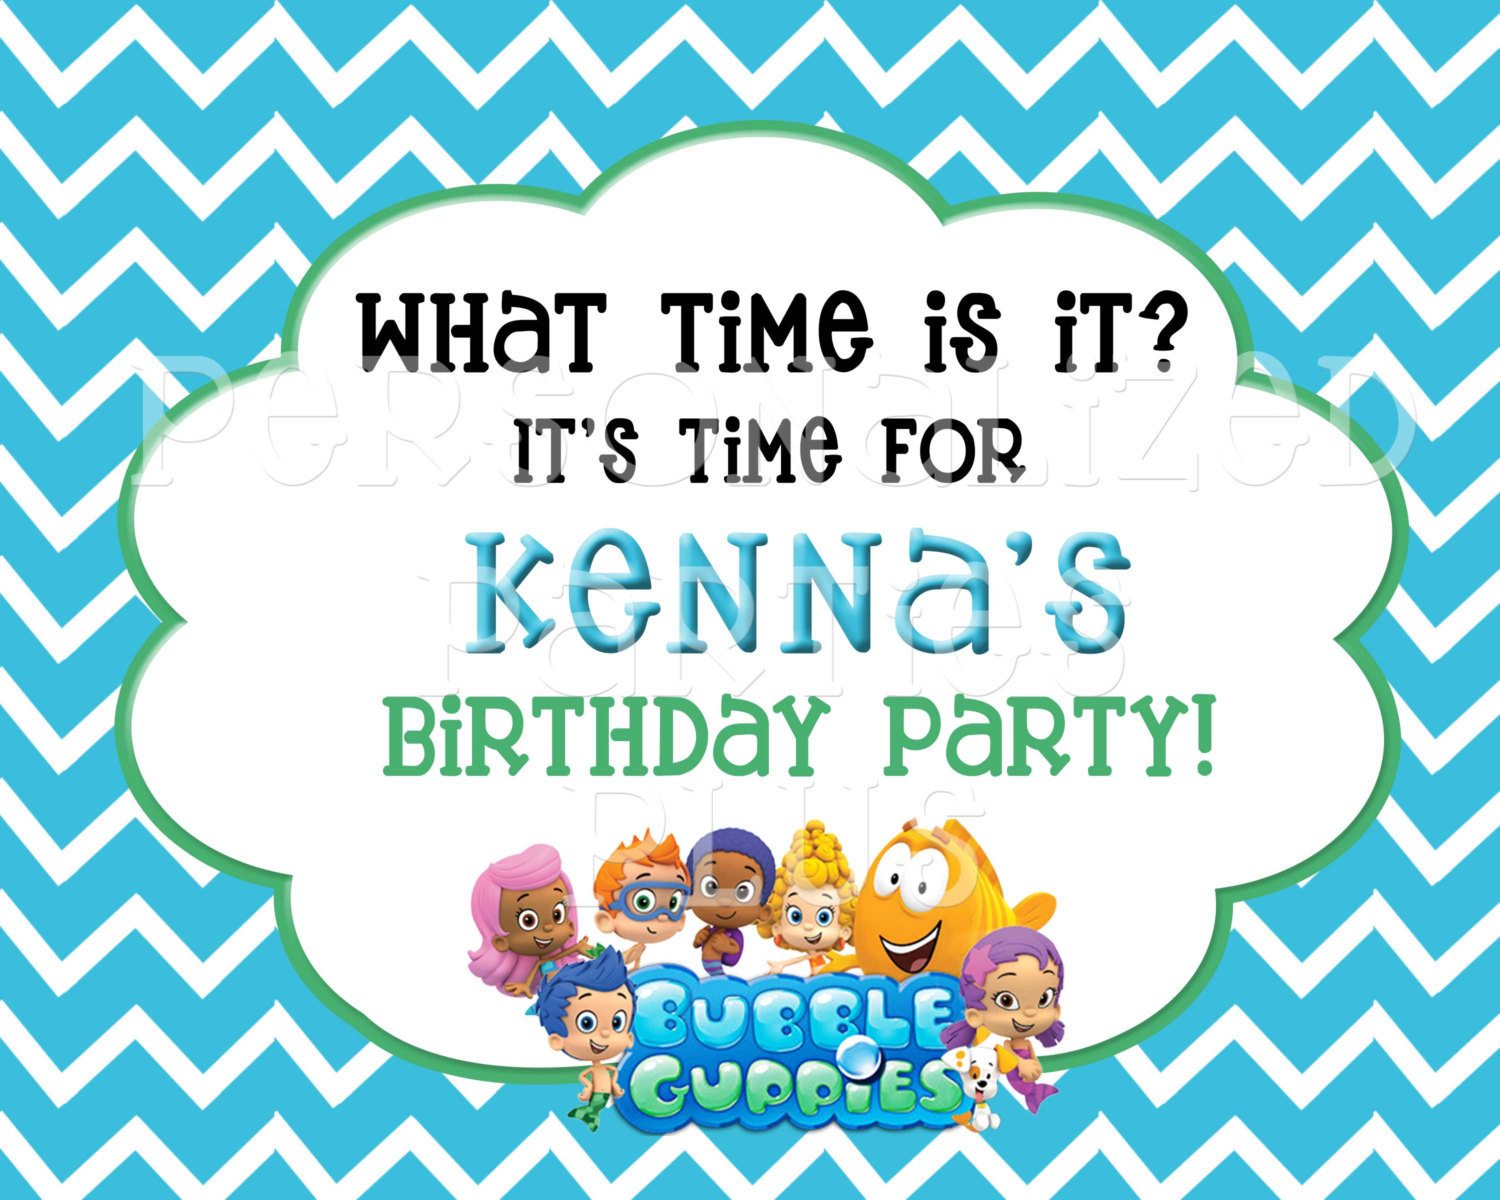 Bubble Guppie birthday sign: What time is it? It's time for birthday party!